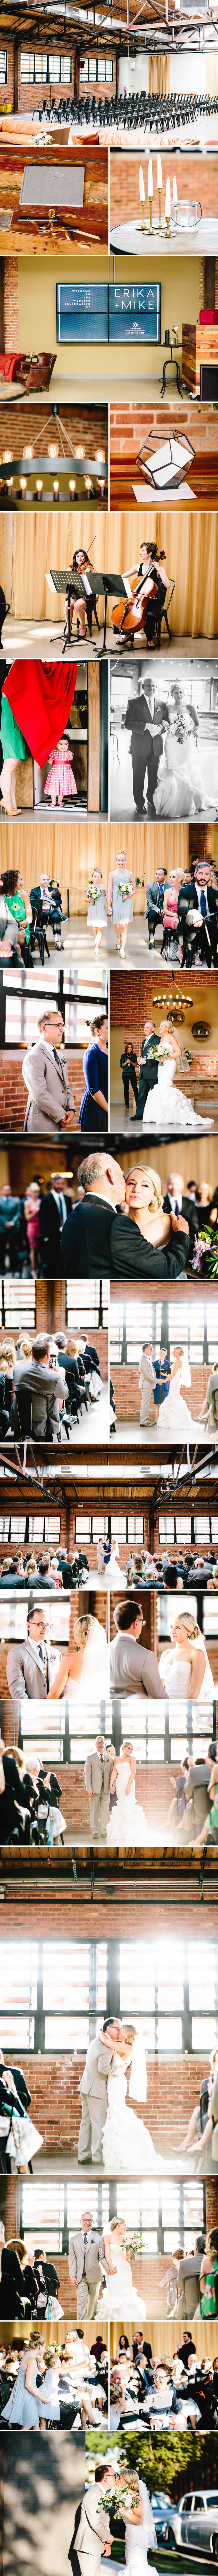 chicago-fine-art-wedding-photography-stratta5